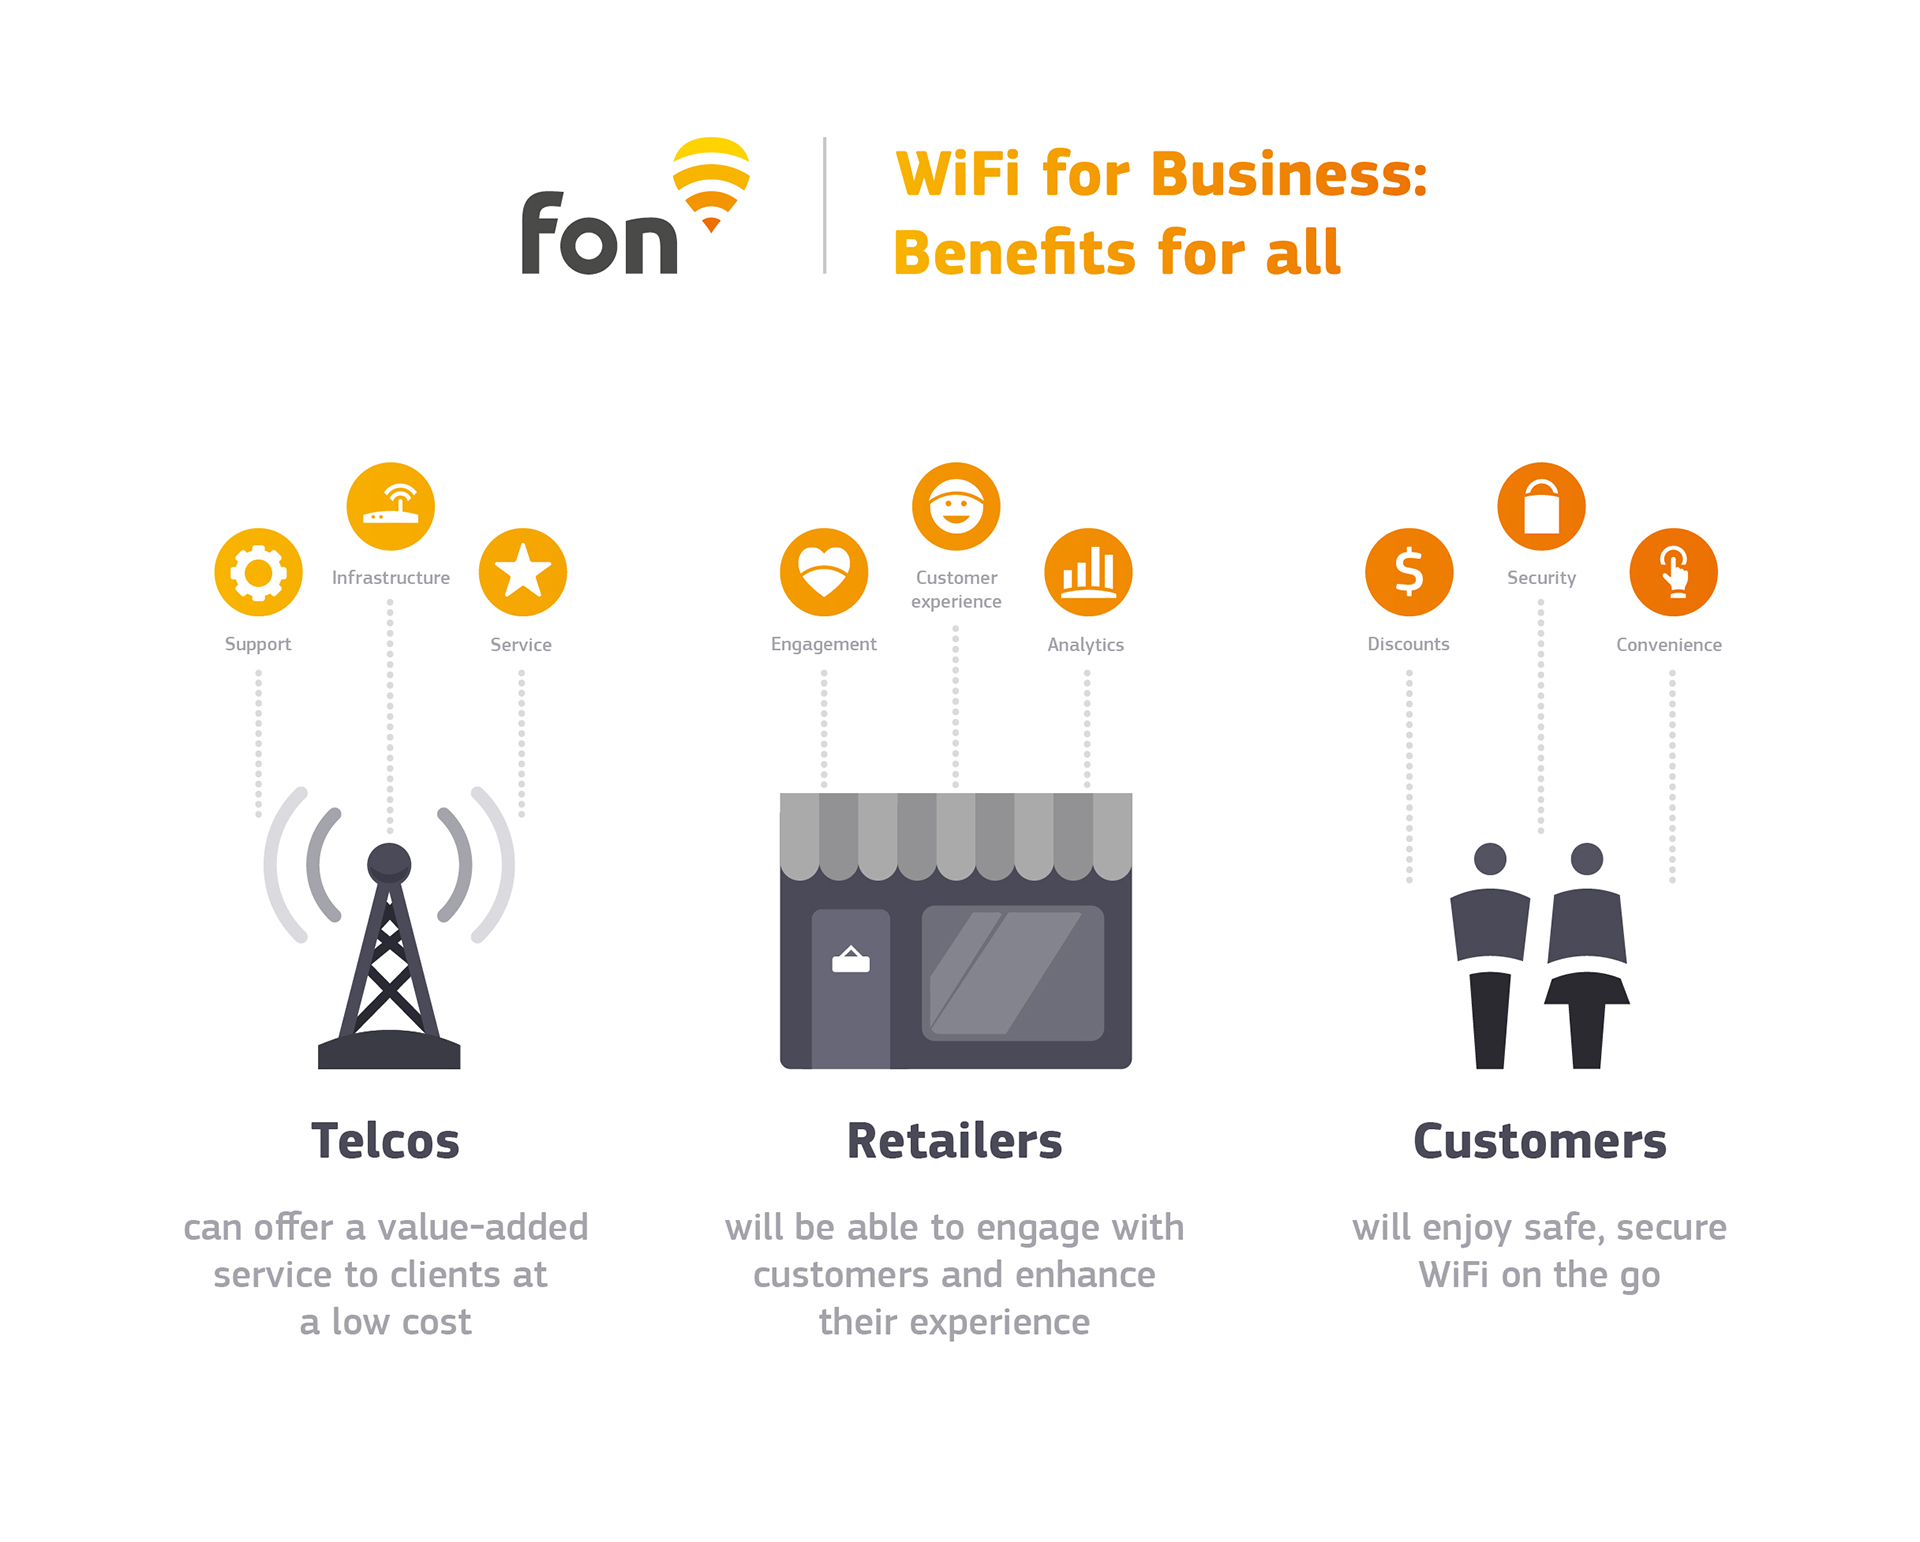 infographic benefits of Fon's WiFi for Business